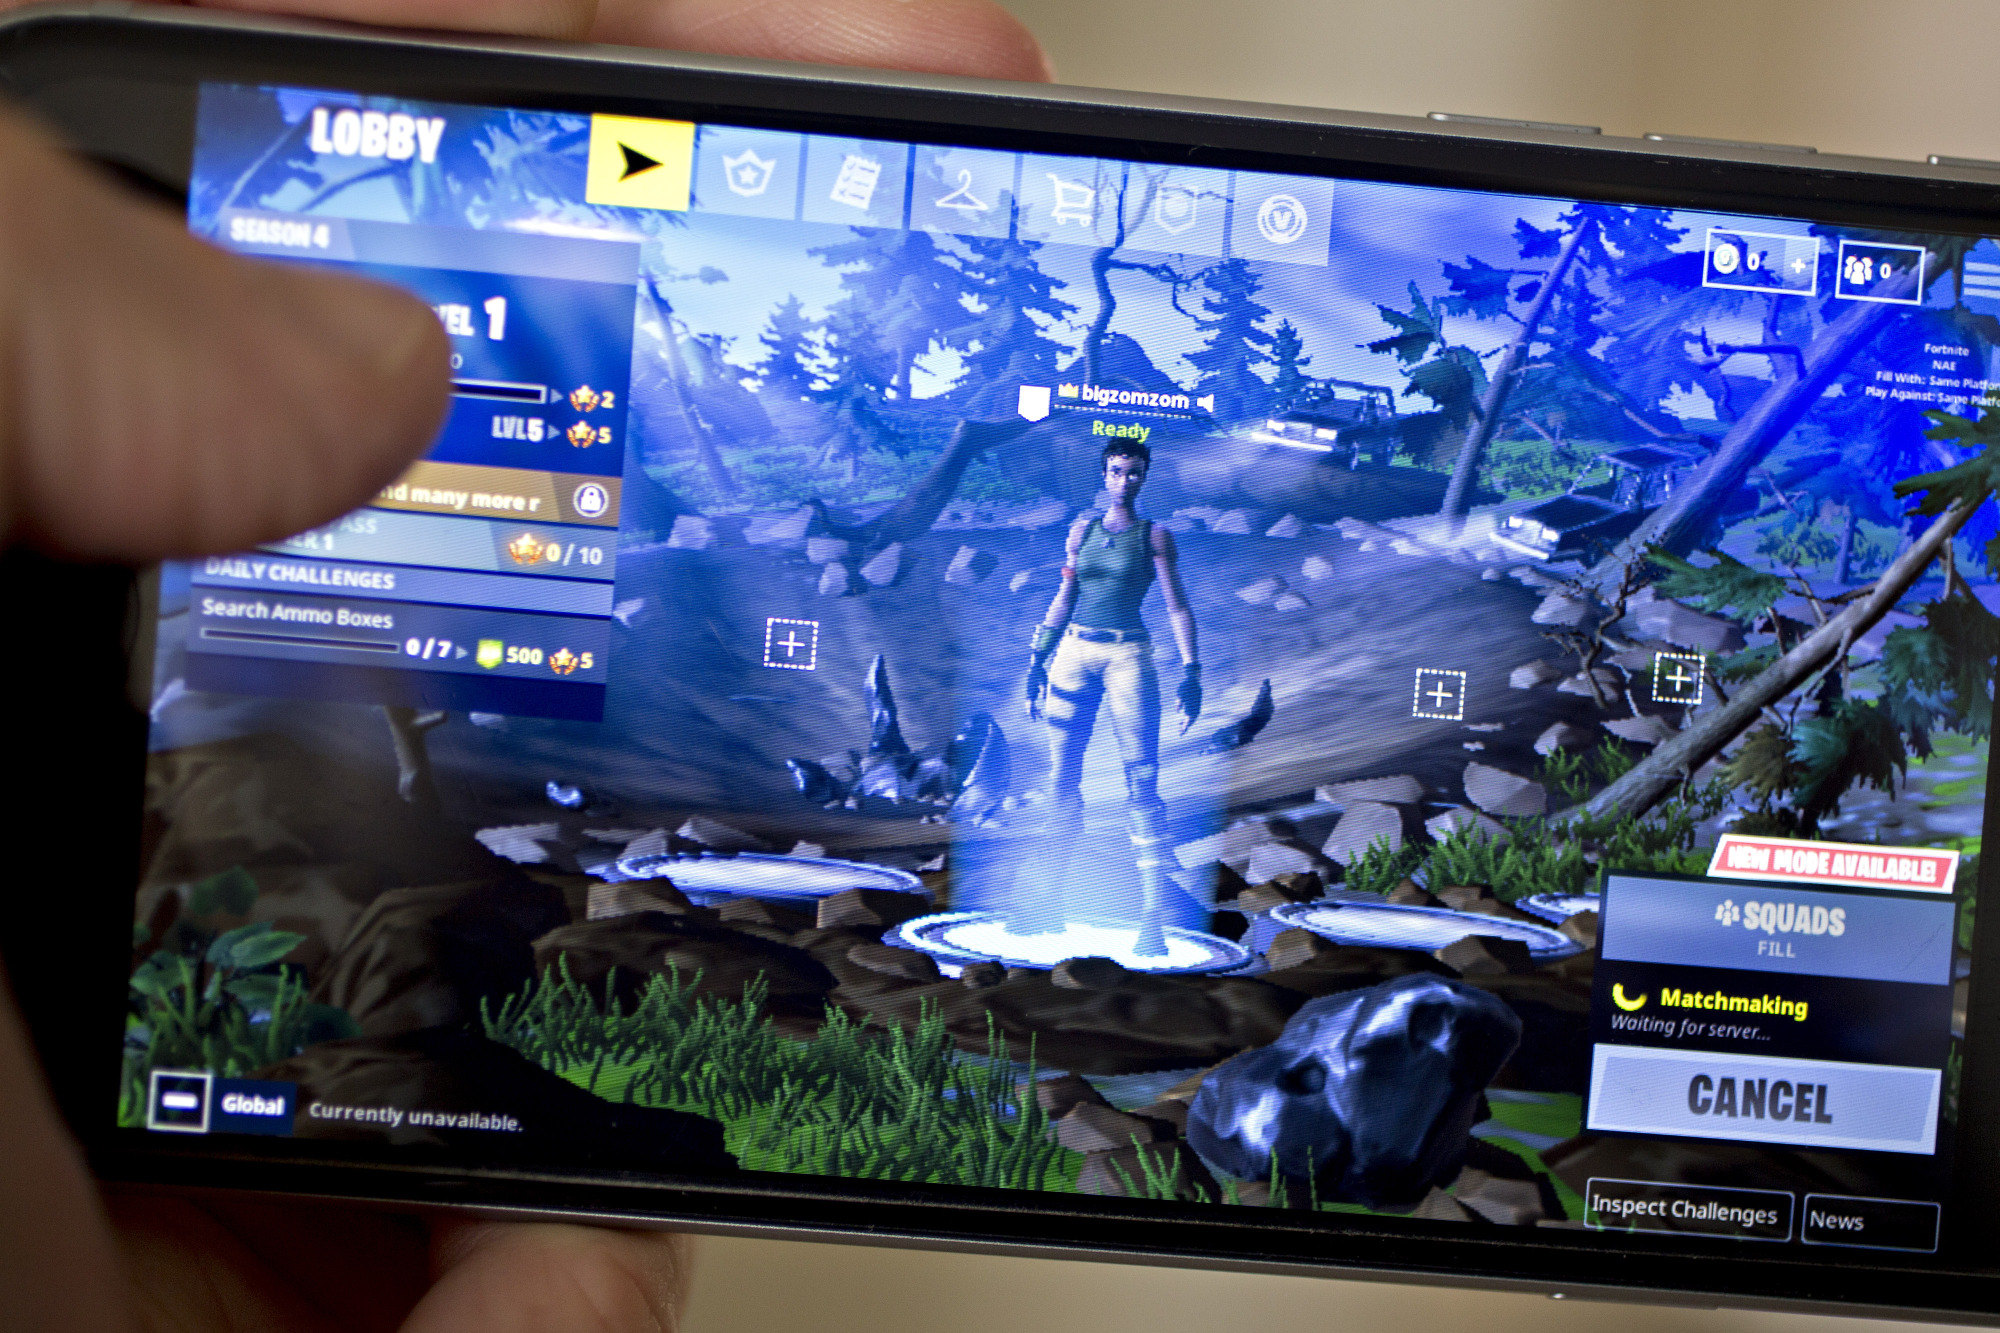 The Epic Games Inc. Fortnite: Battle Royale video game is displayed for a photograph on an Apple Inc. iPhone in Washington, D.C., U.S.